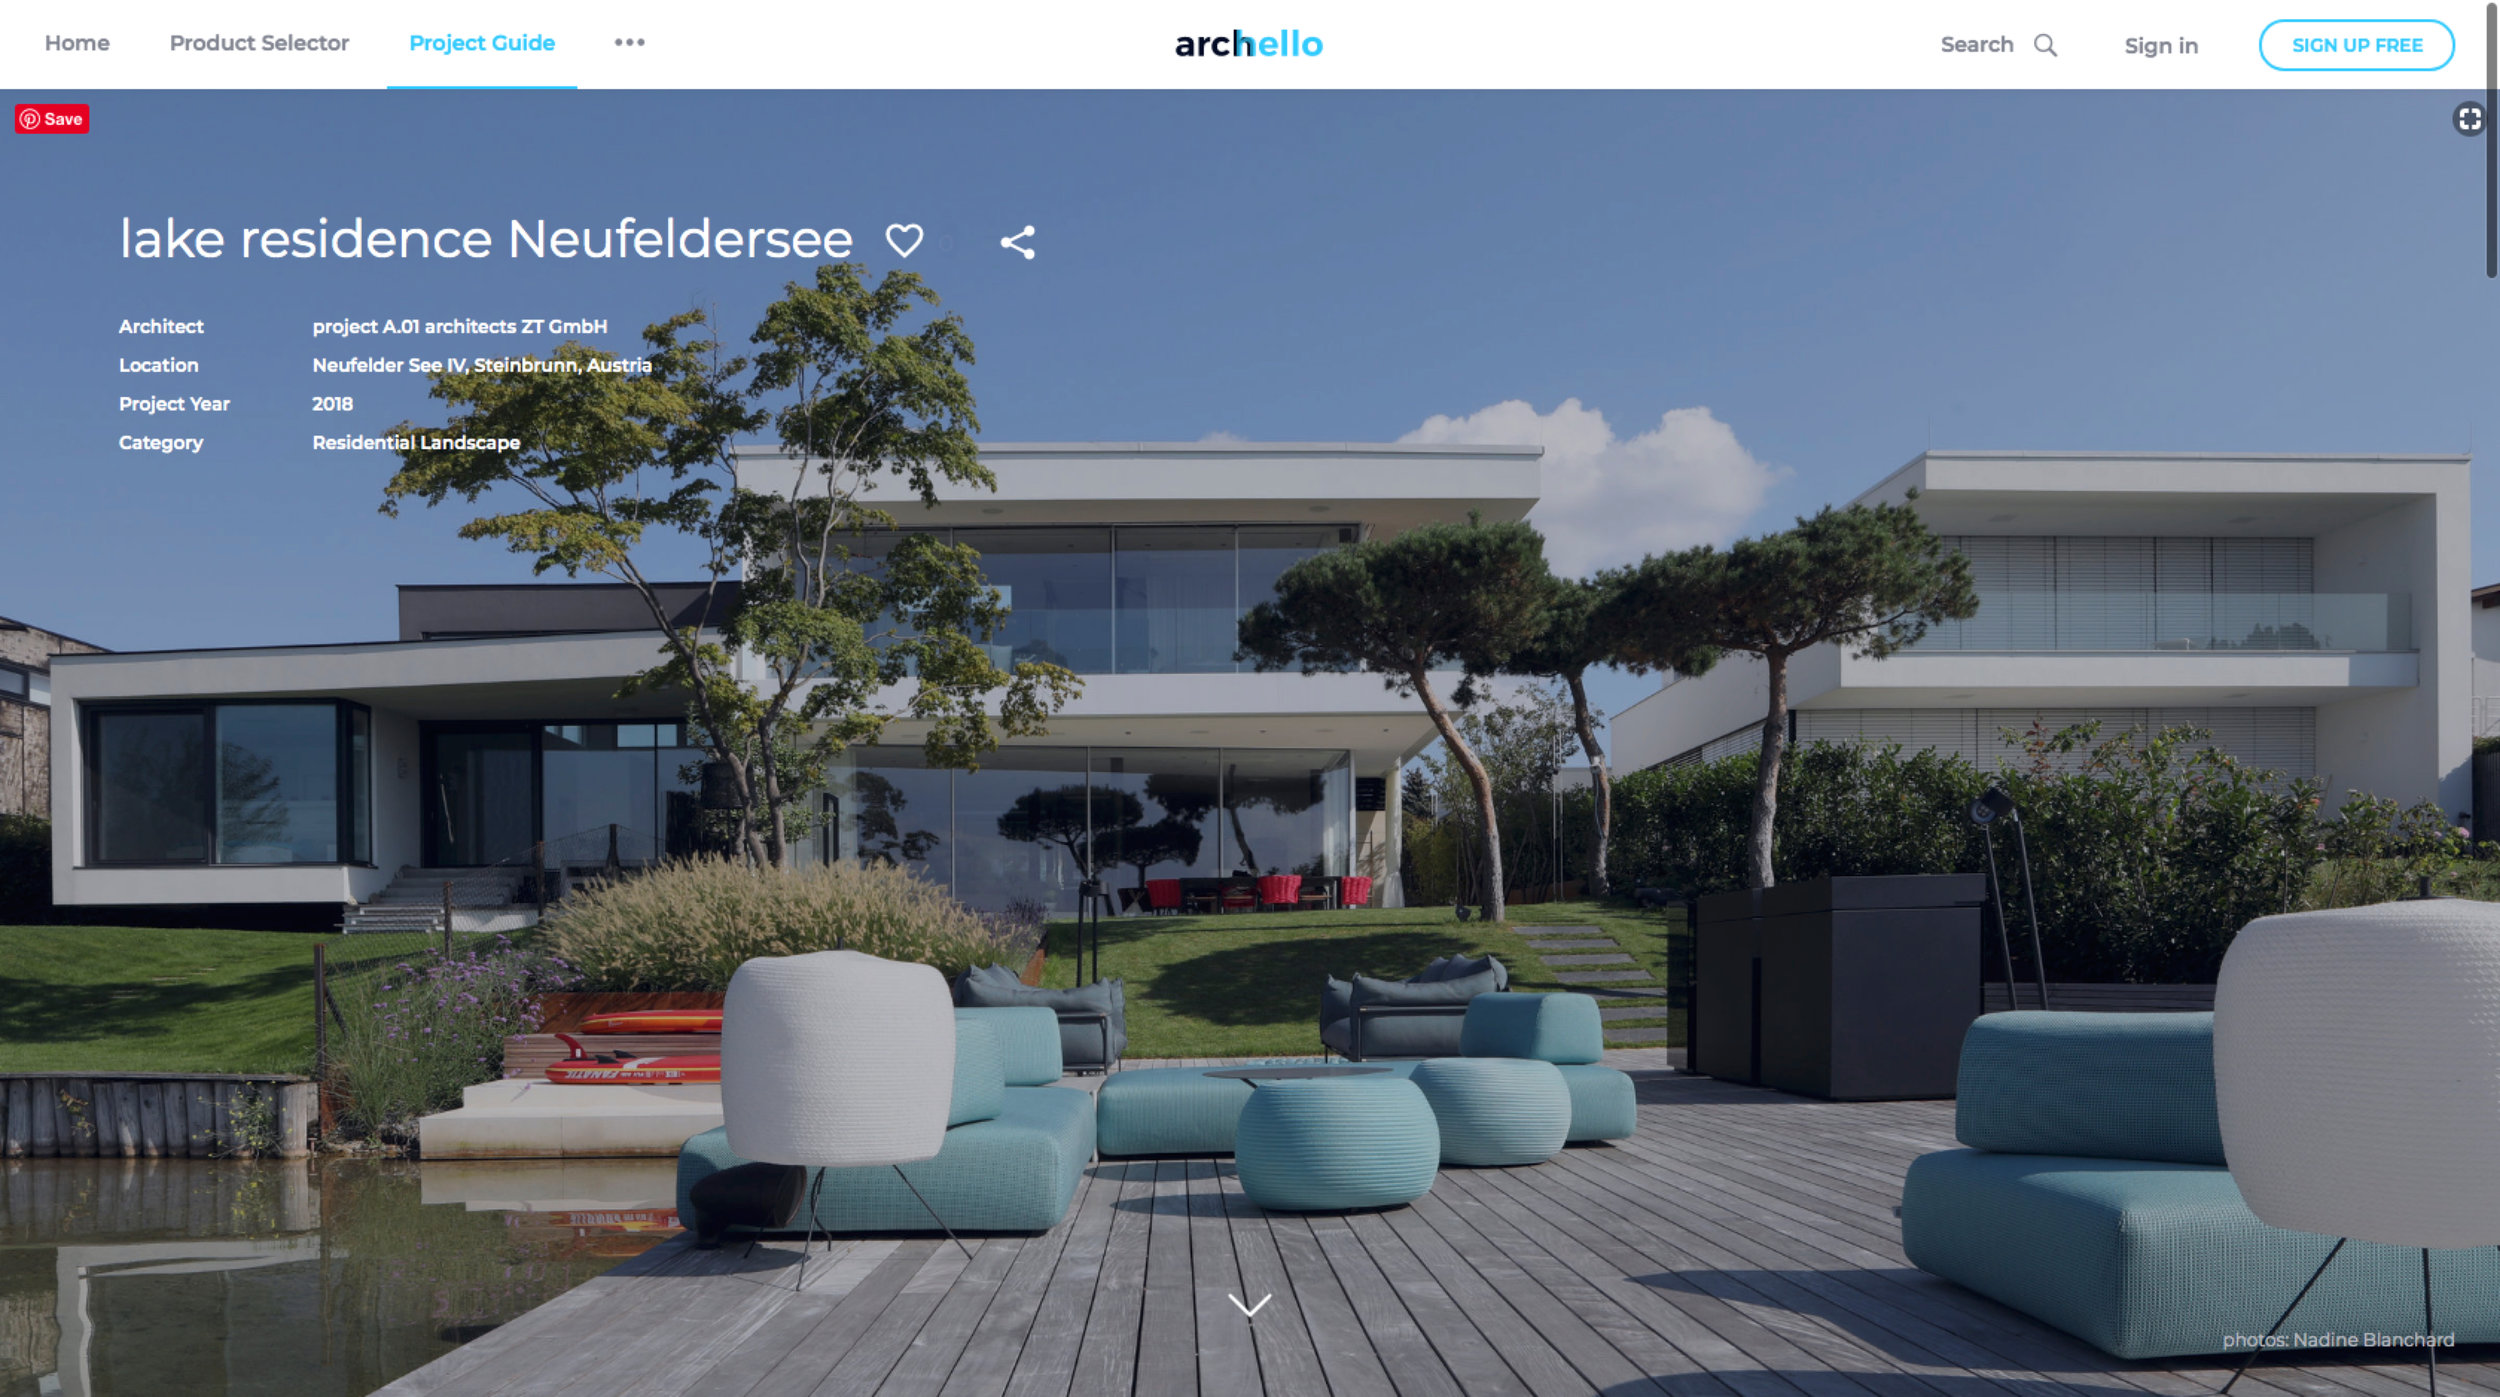 screenshot-archello.com-2019.08.14-08_33_12-A.jpg